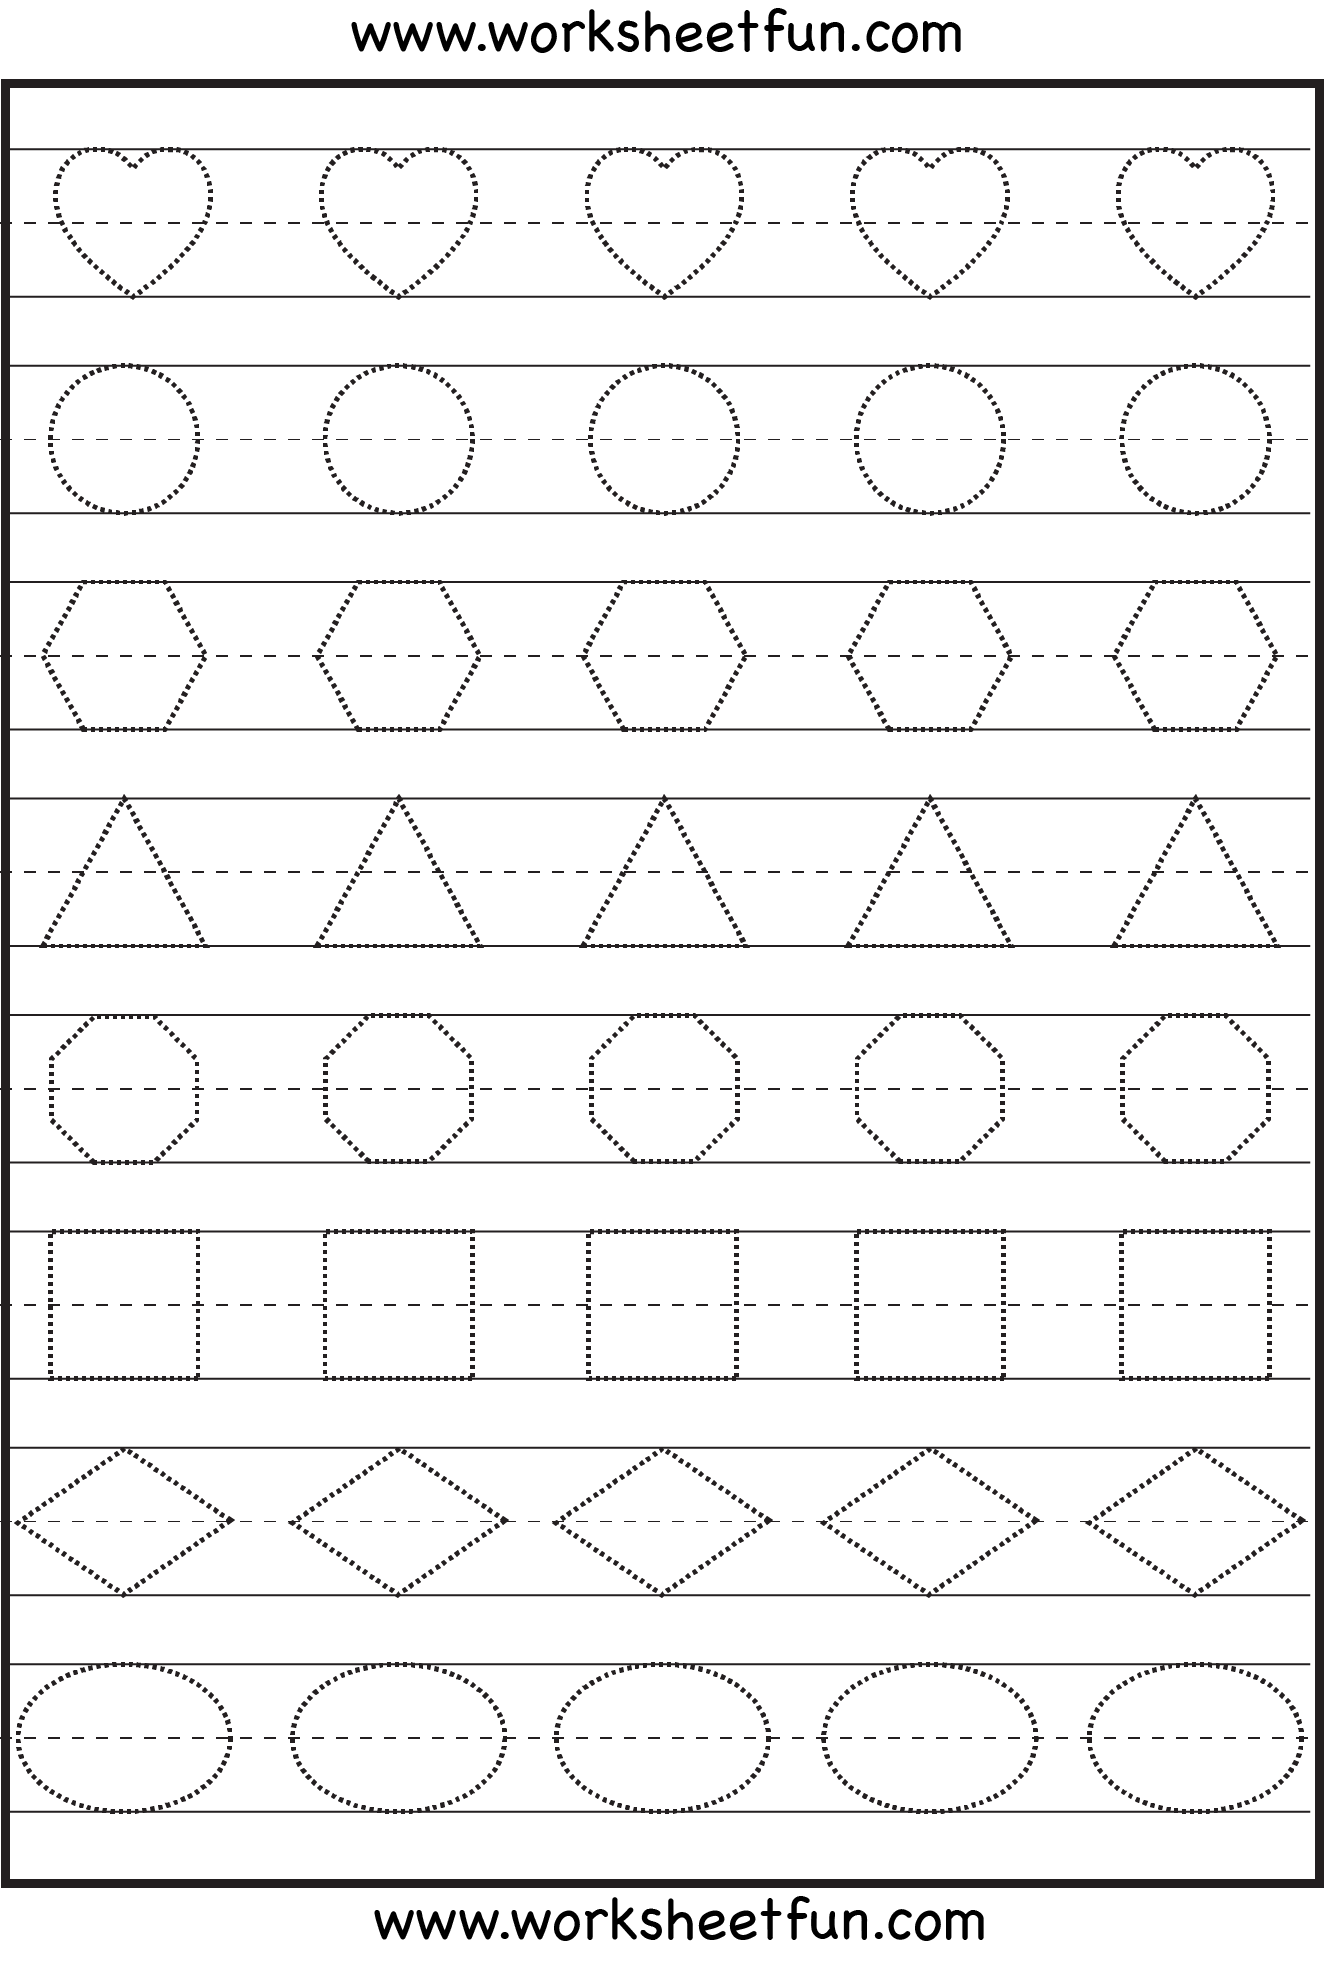 Free Worksheet Free Tracing Worksheets letter worksheets for kindergarten printable free spring 78 images about school on pinterest preschool and preschool